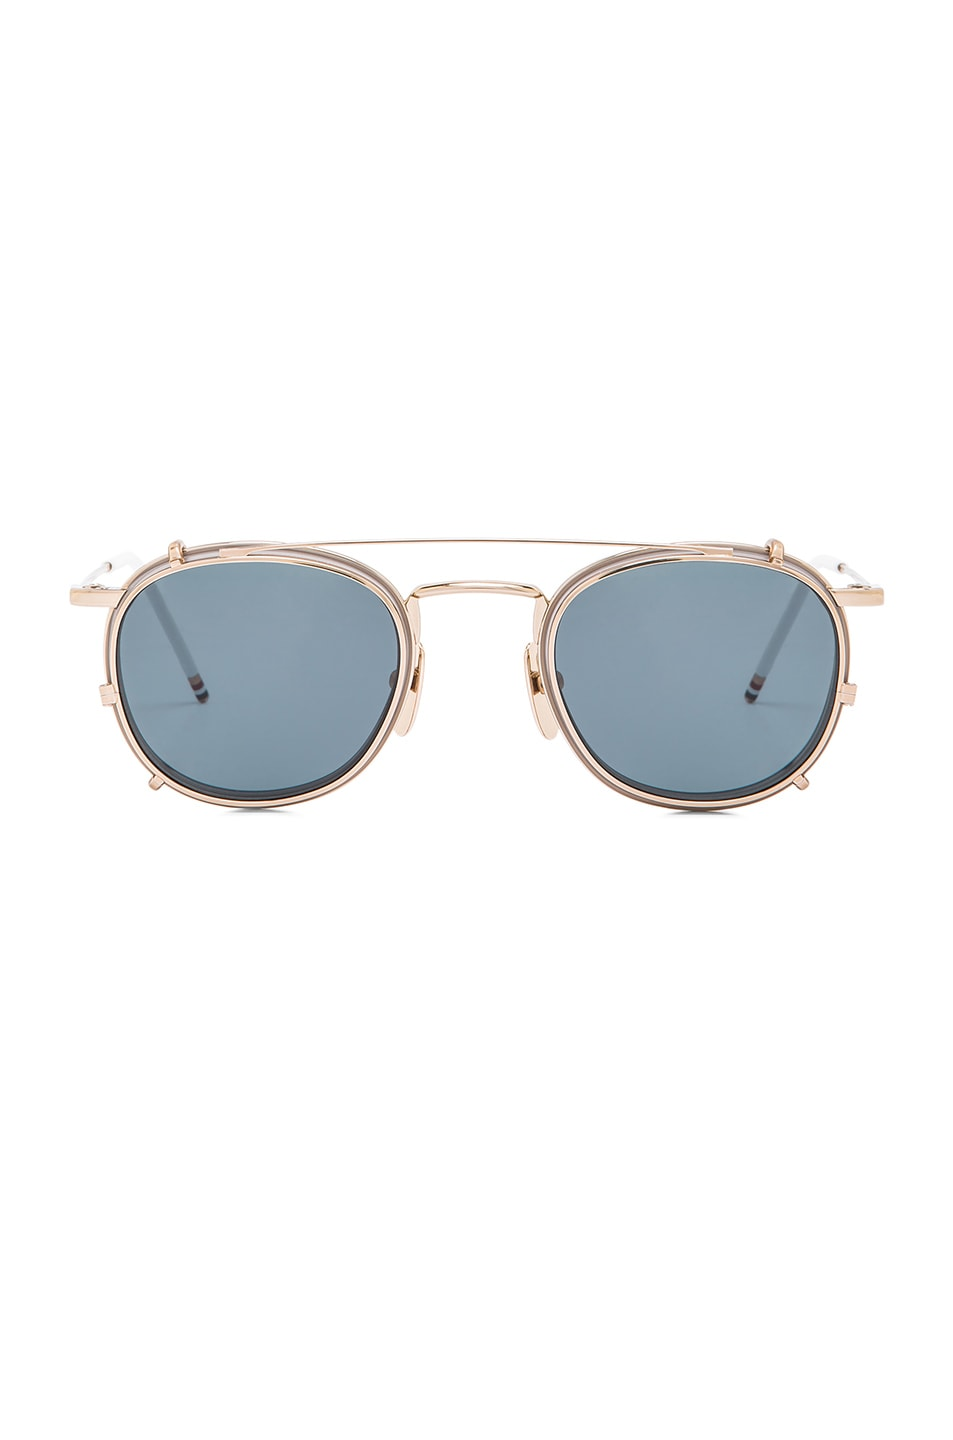 1bdf75de74 Image 1 of Thom Browne Clip On Sunglasses in 12K Gold   Grey